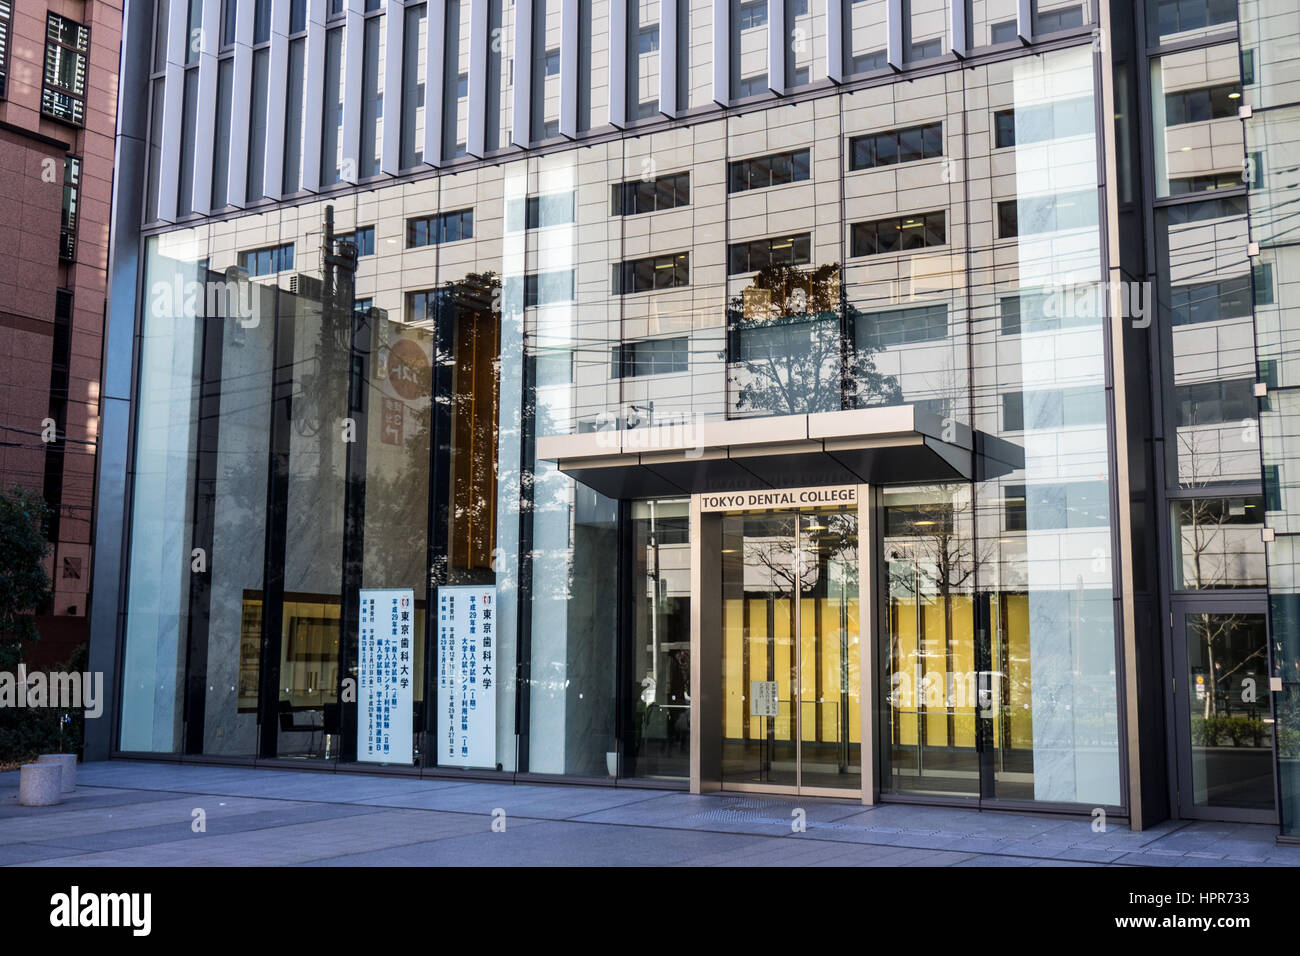 Entrance to the Tokyo Dental College. Stock Photo